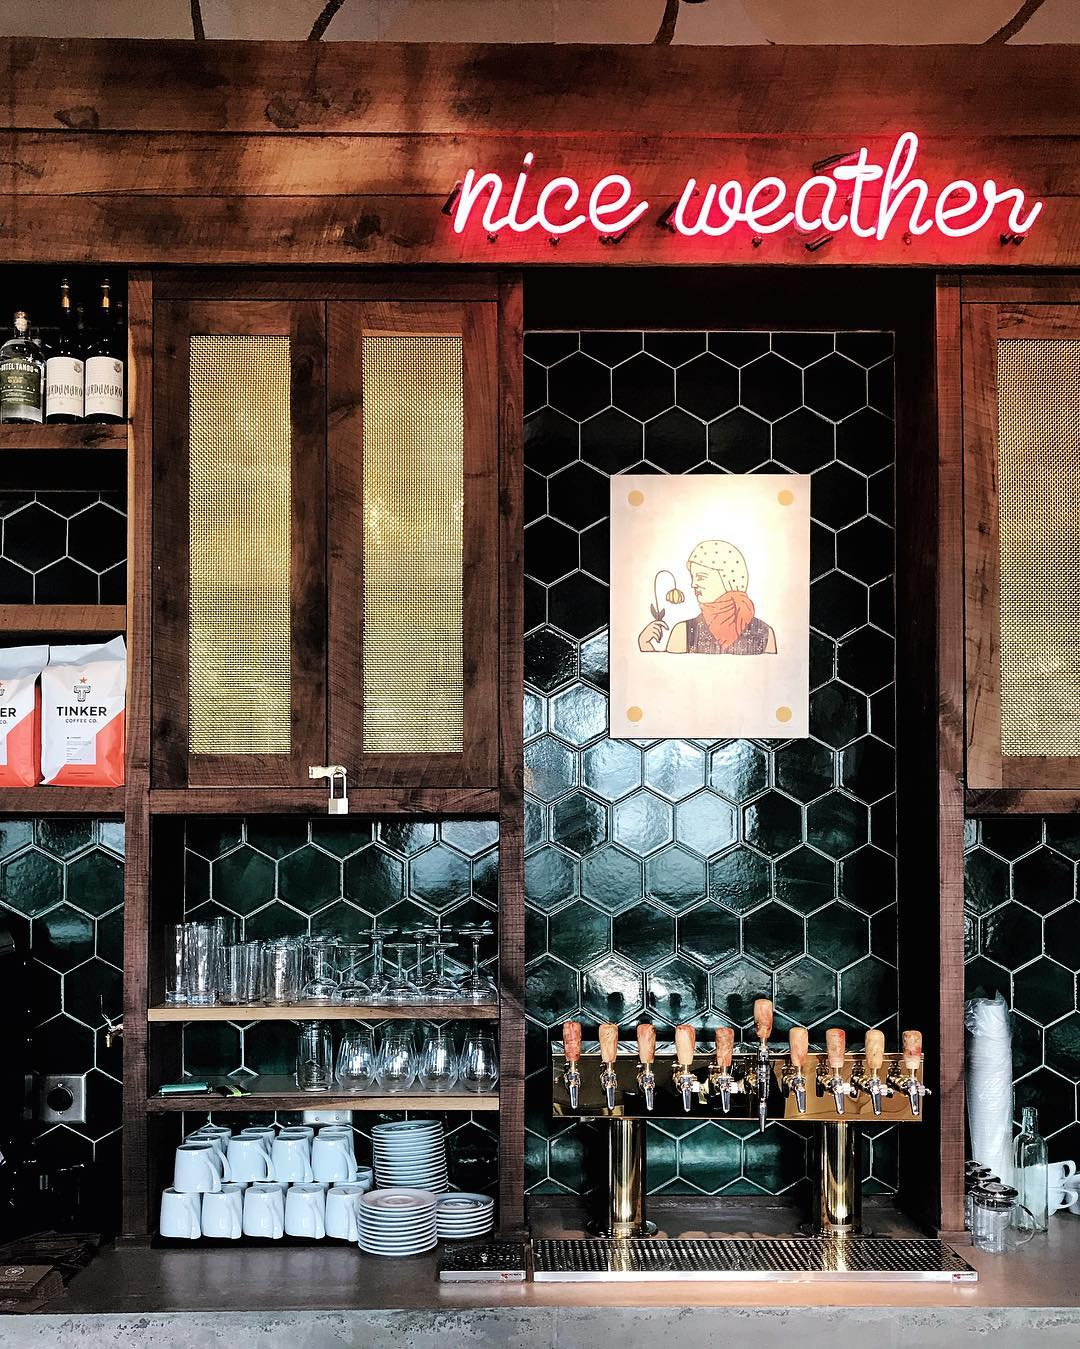 It's always 'nice weather' inside Provider.